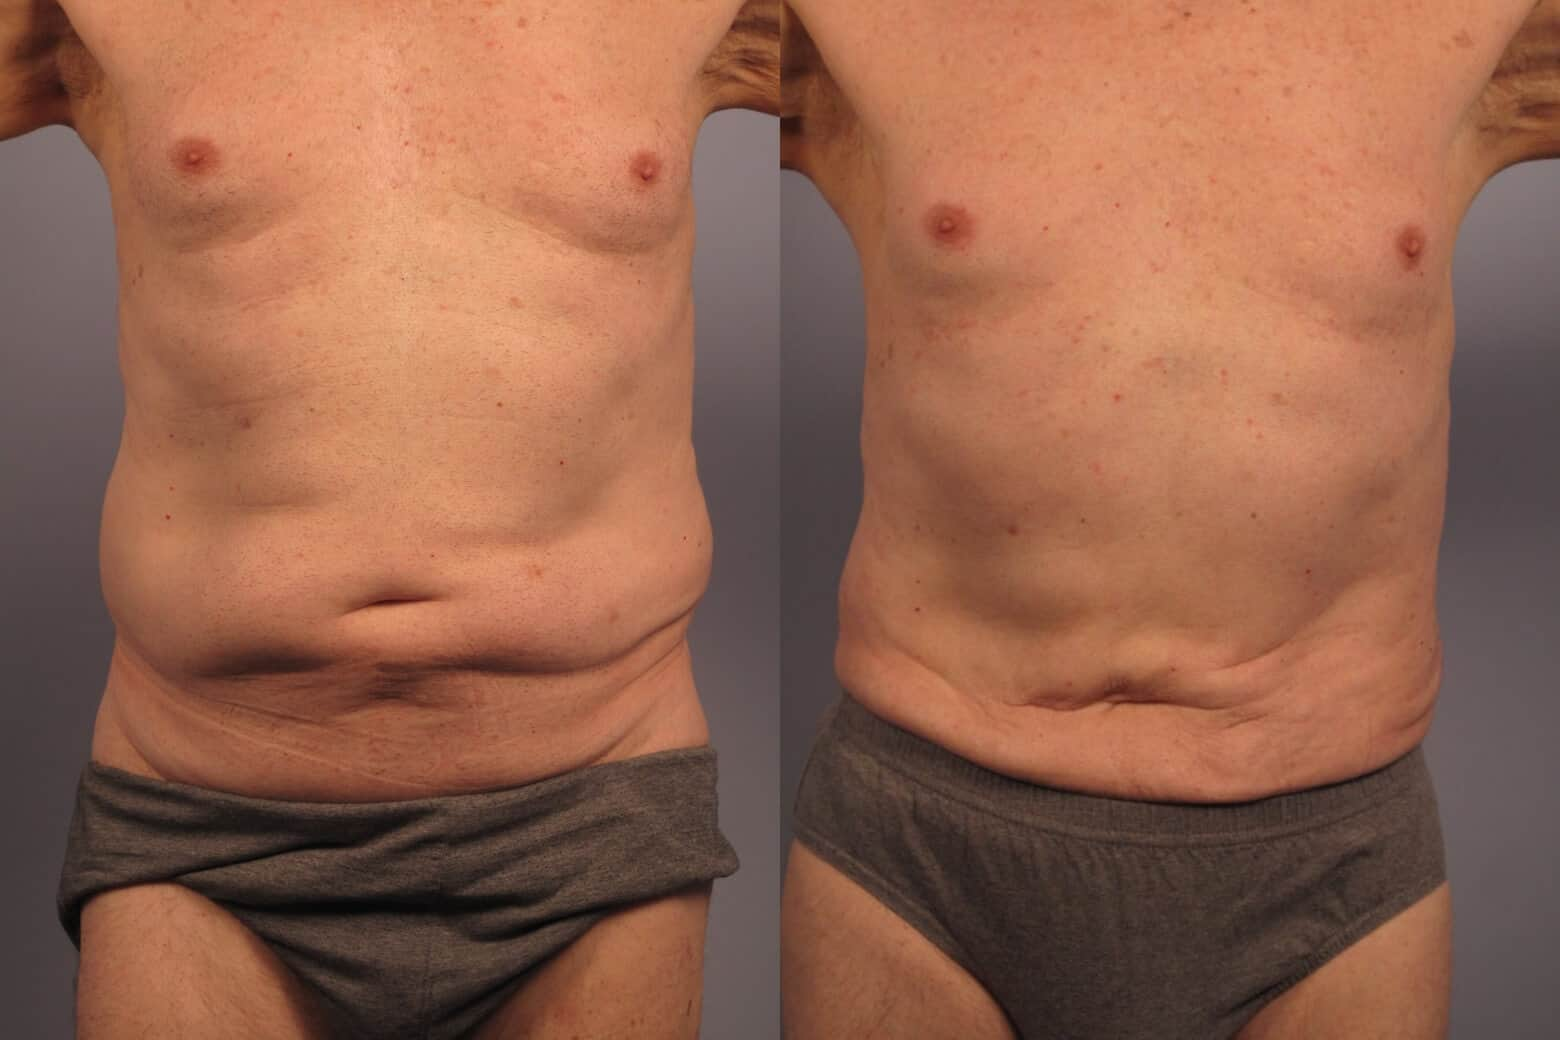 Male Tummy Tuck - Before and After Gallery - Patient Photo 15